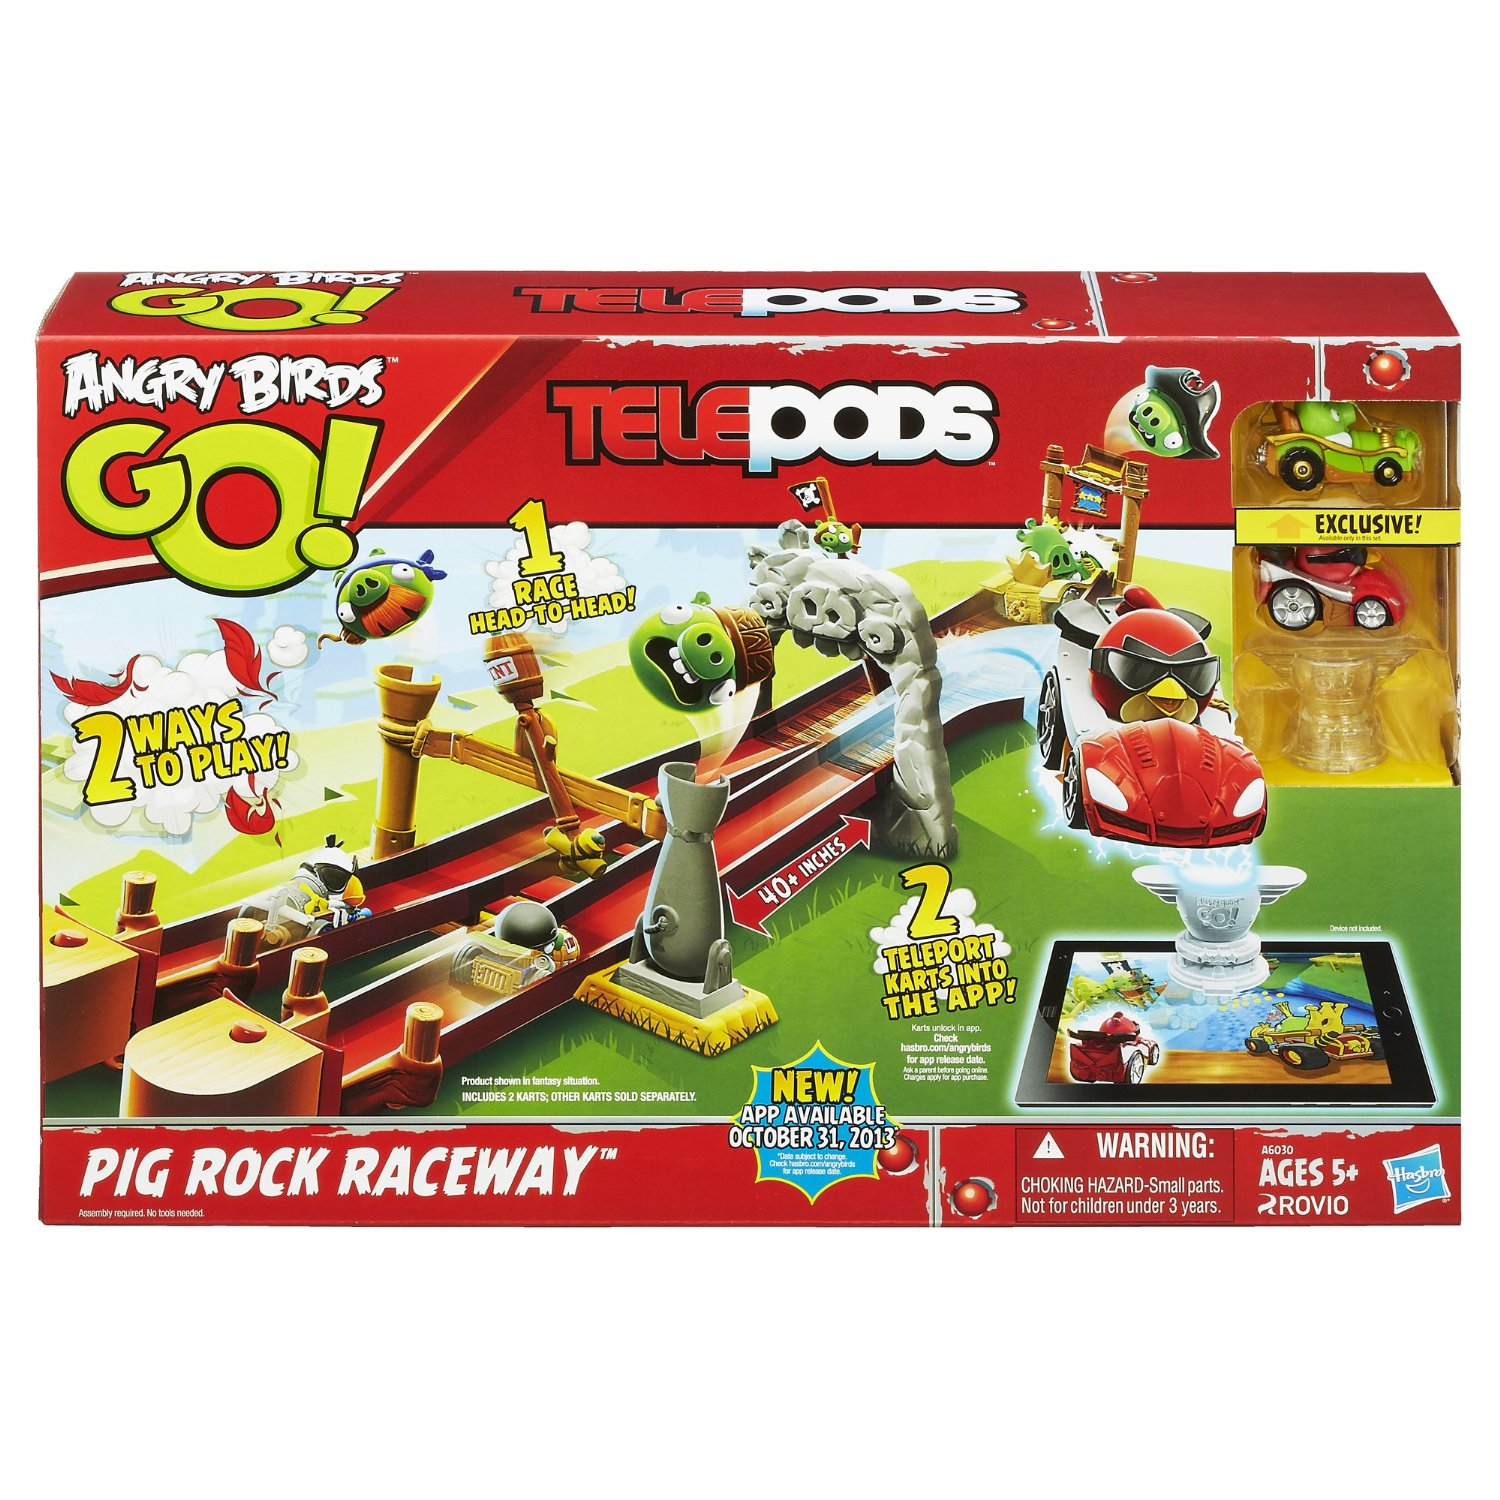 Angry Birds Go Telepods Pig Rock Raceway Set Only 10 46